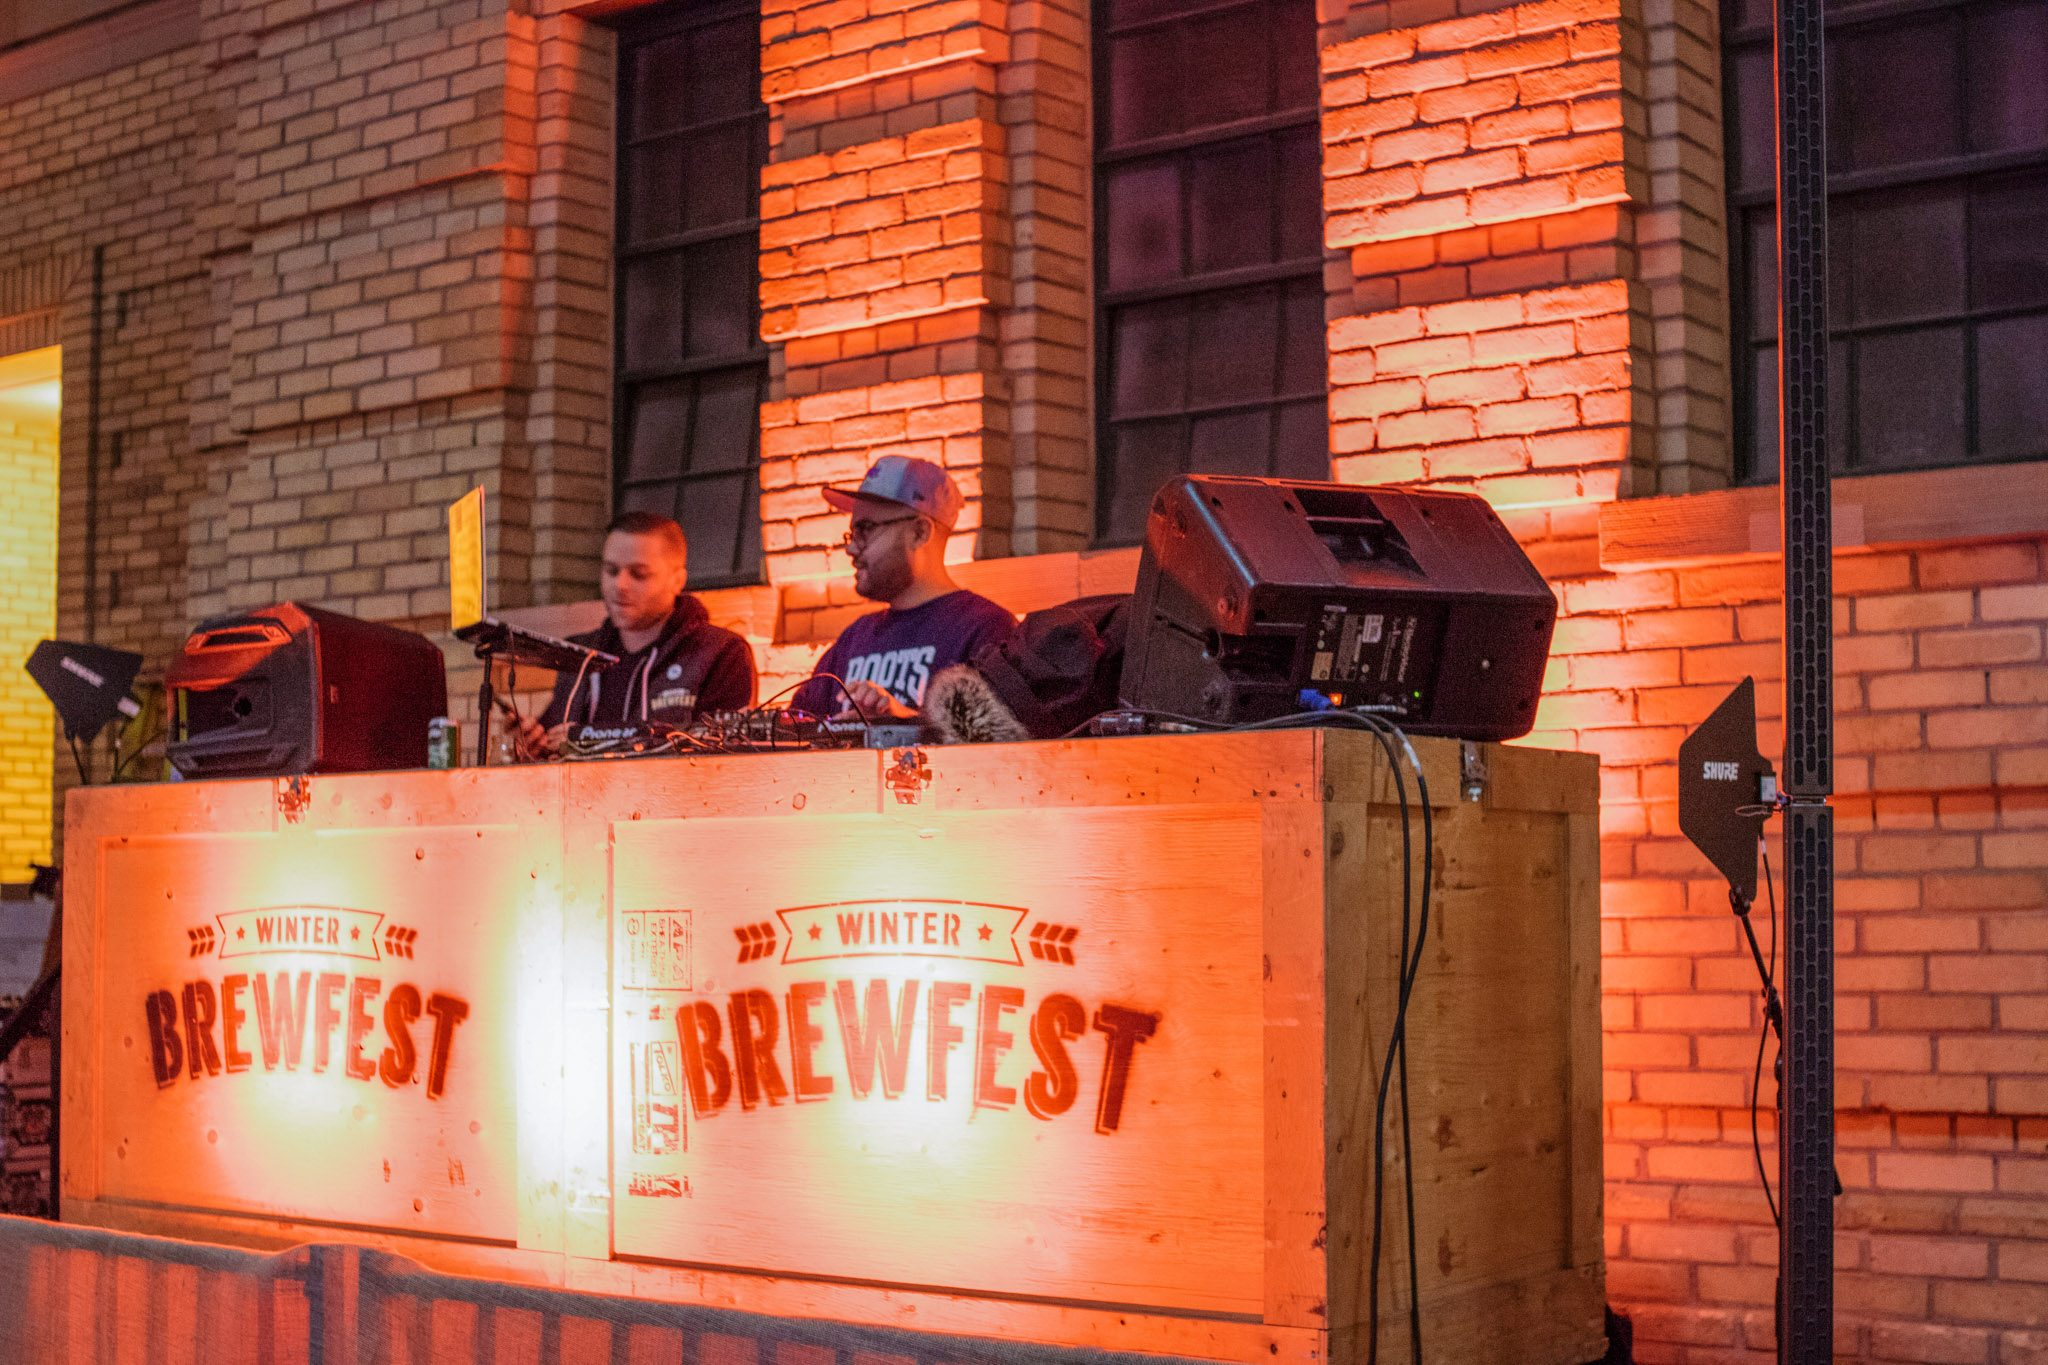 Winter brewfest 2018